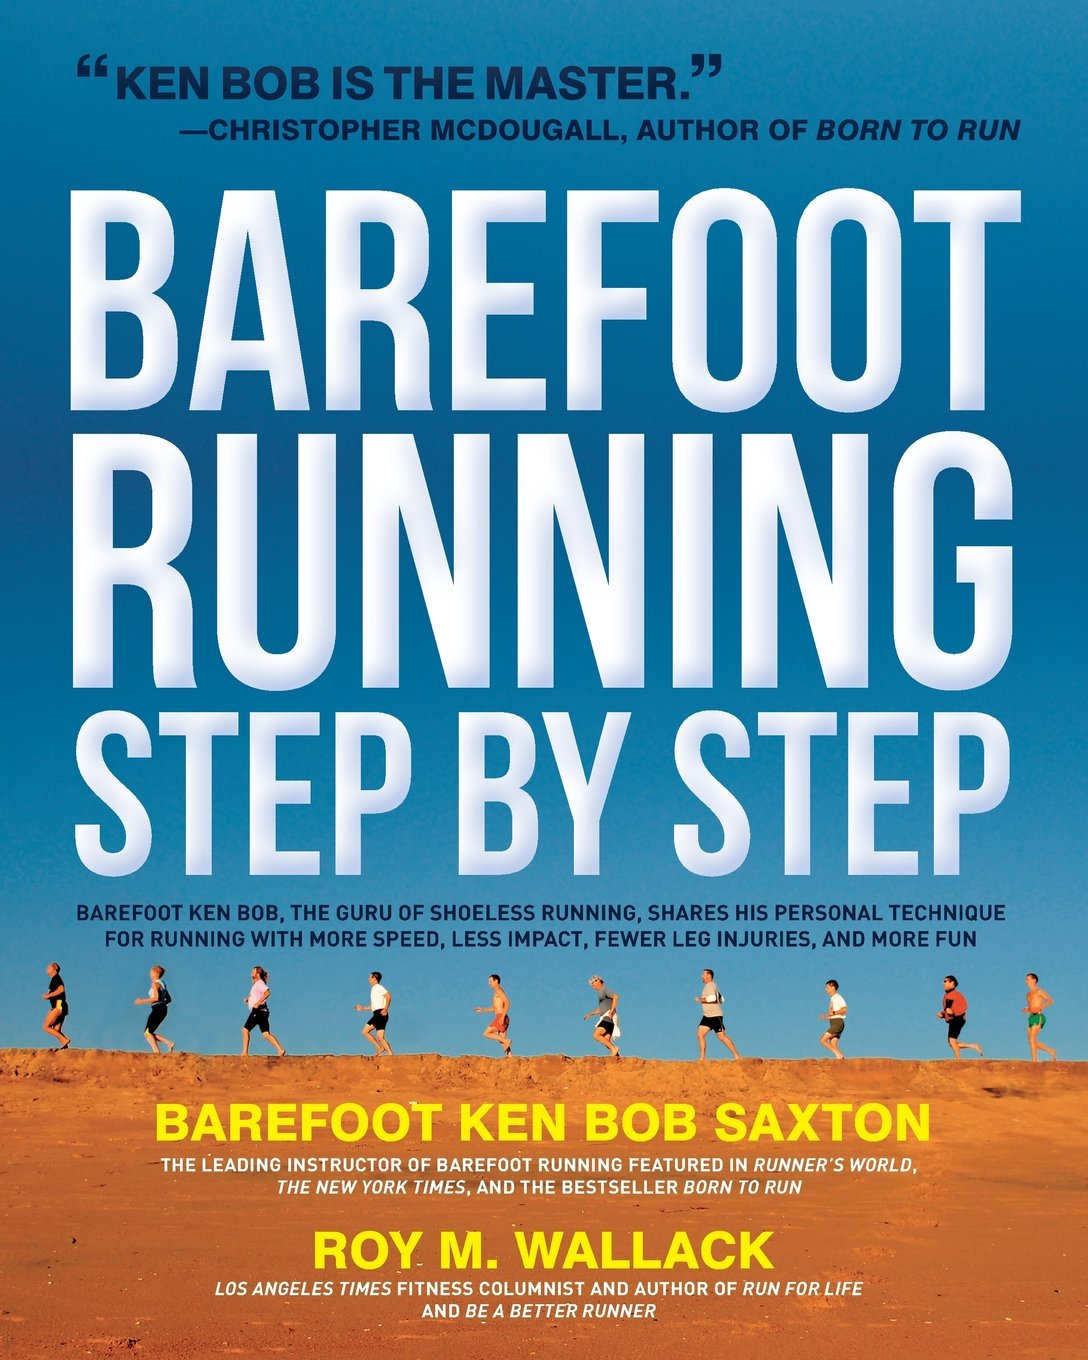 Barefoot Running Step By Step: Barefoot Ken Bob, The Guru Of Shoeless  Running, Shares His Personal Technique For Running With More Speed, Less  Impact,